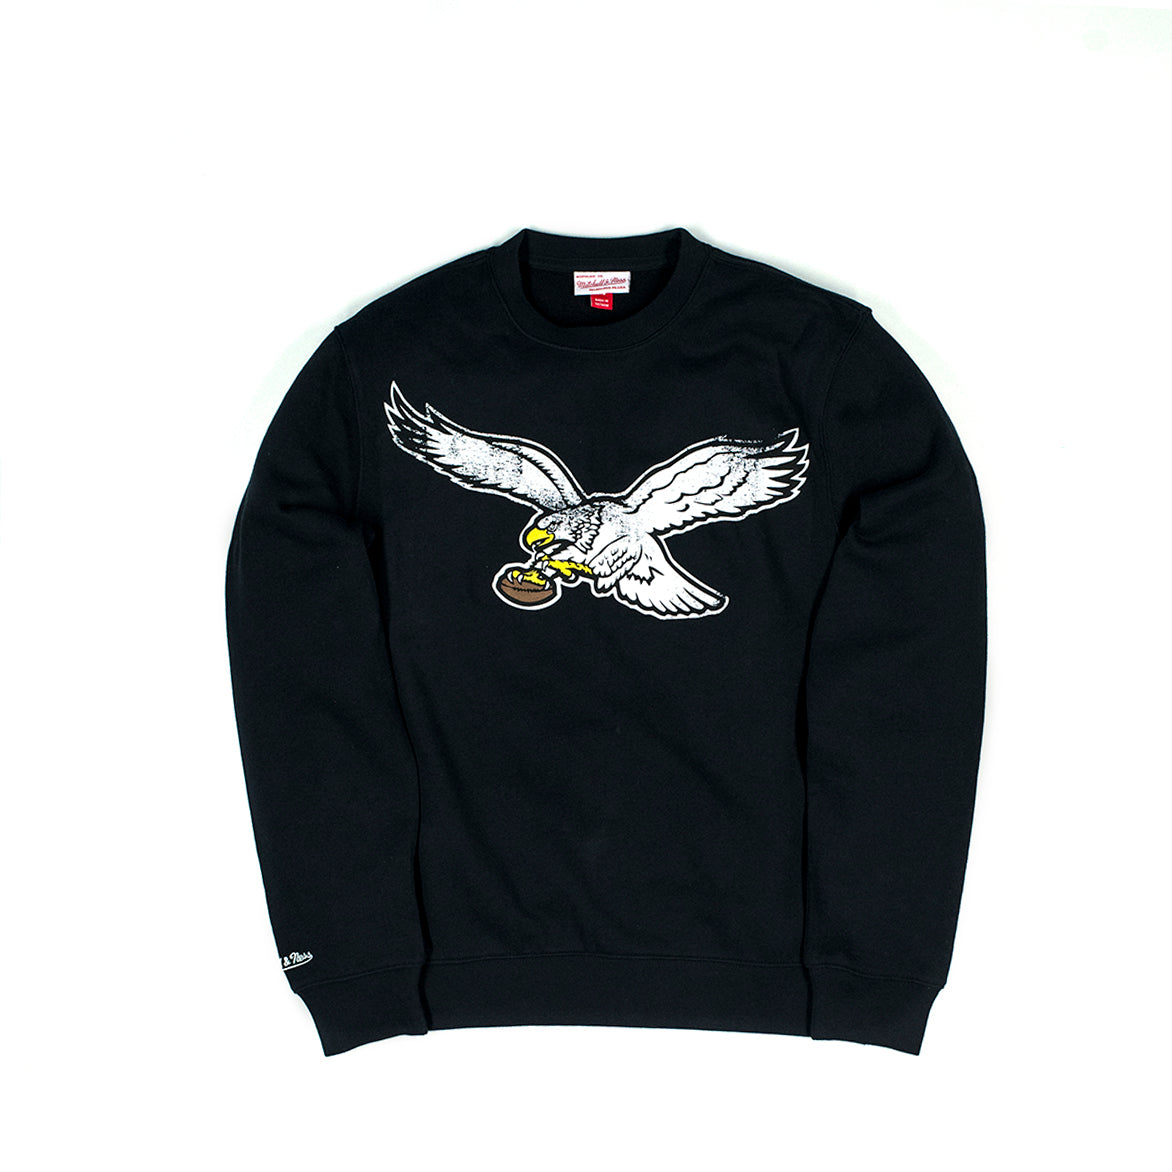 EAGLES CREW - BLACK